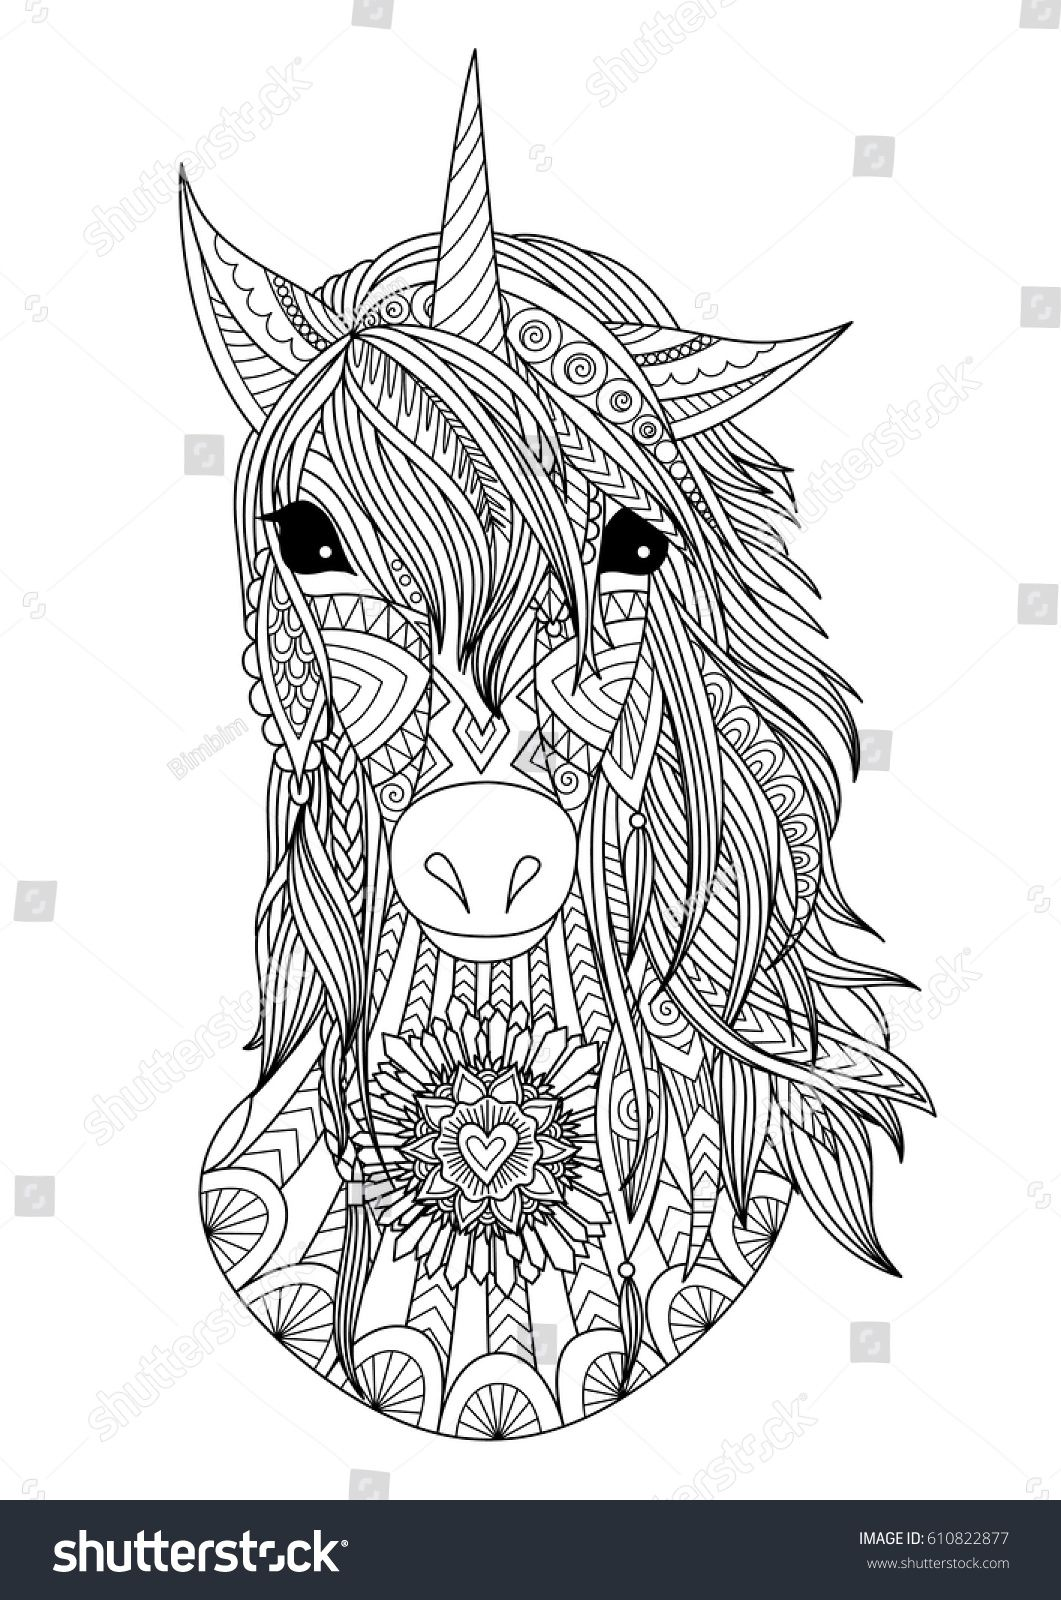 Zendoodle Stylized Unicorn Head For T Shirt Print Design And